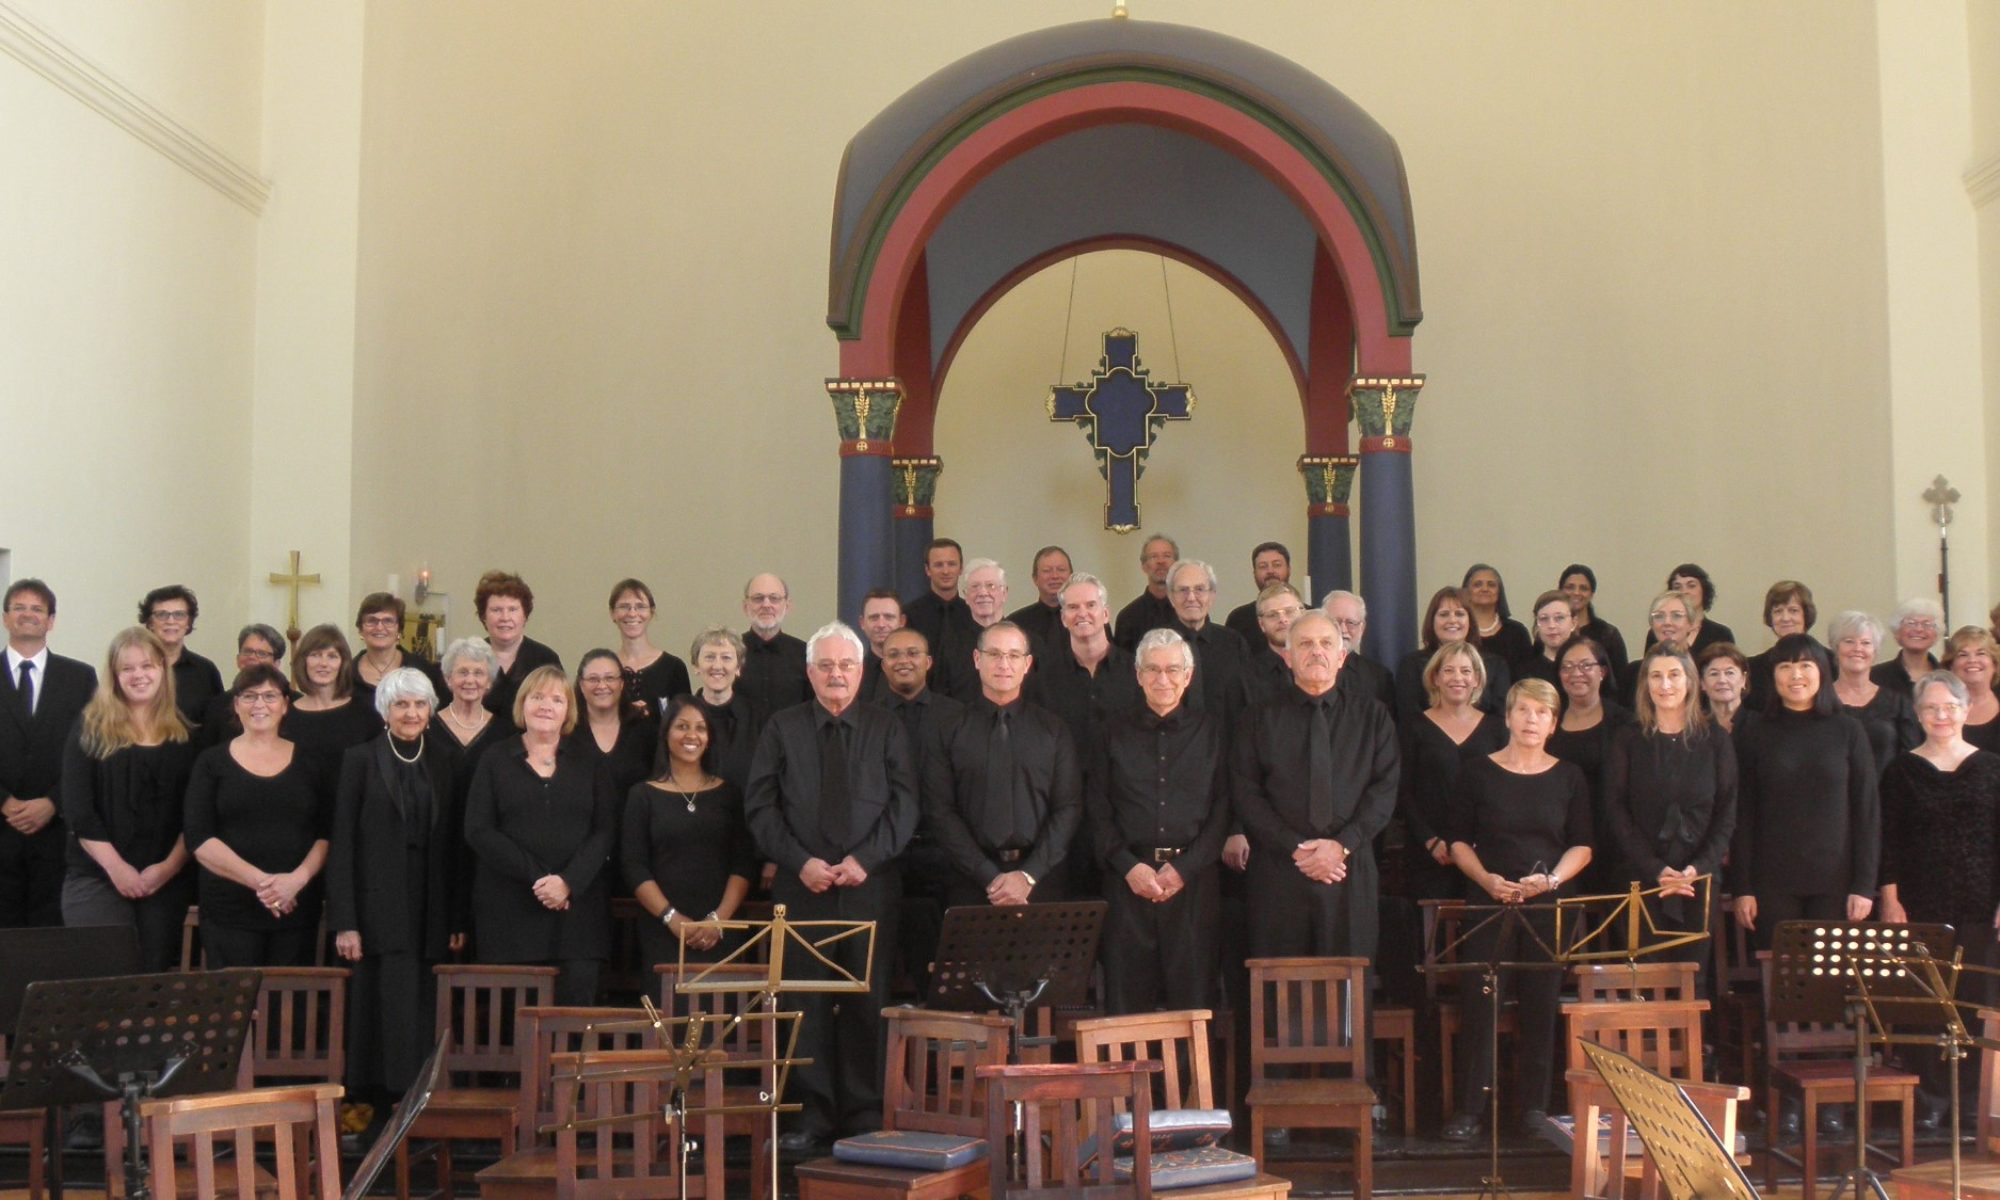 The Symphony Choir of Cape Town